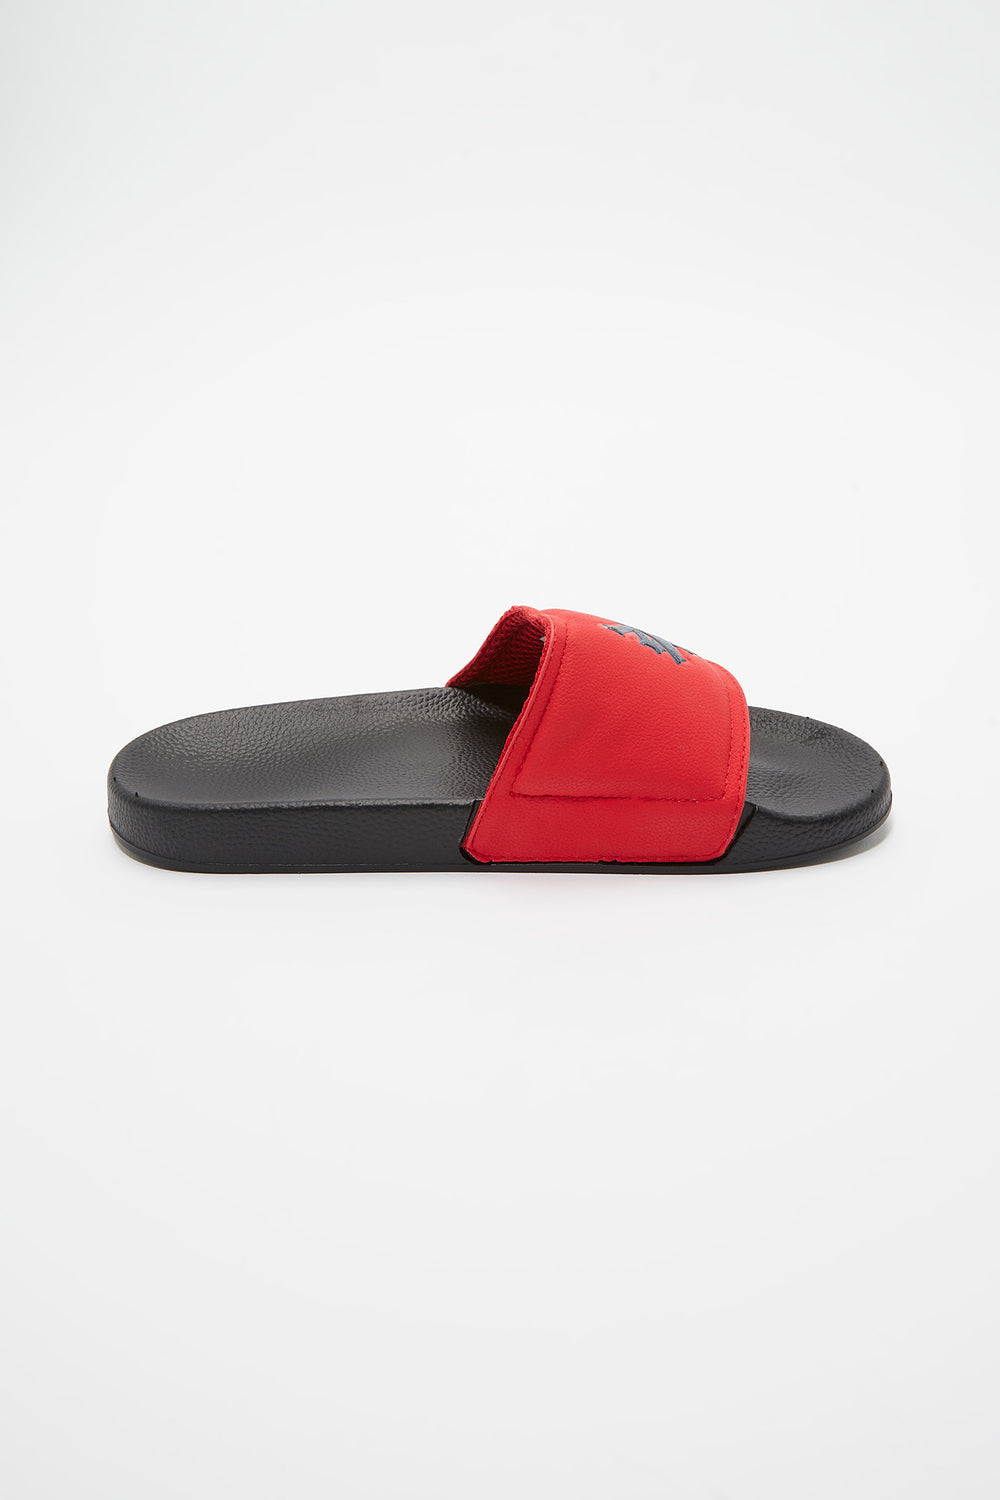 Zoo York Mens Graphic Slider Sandals Red